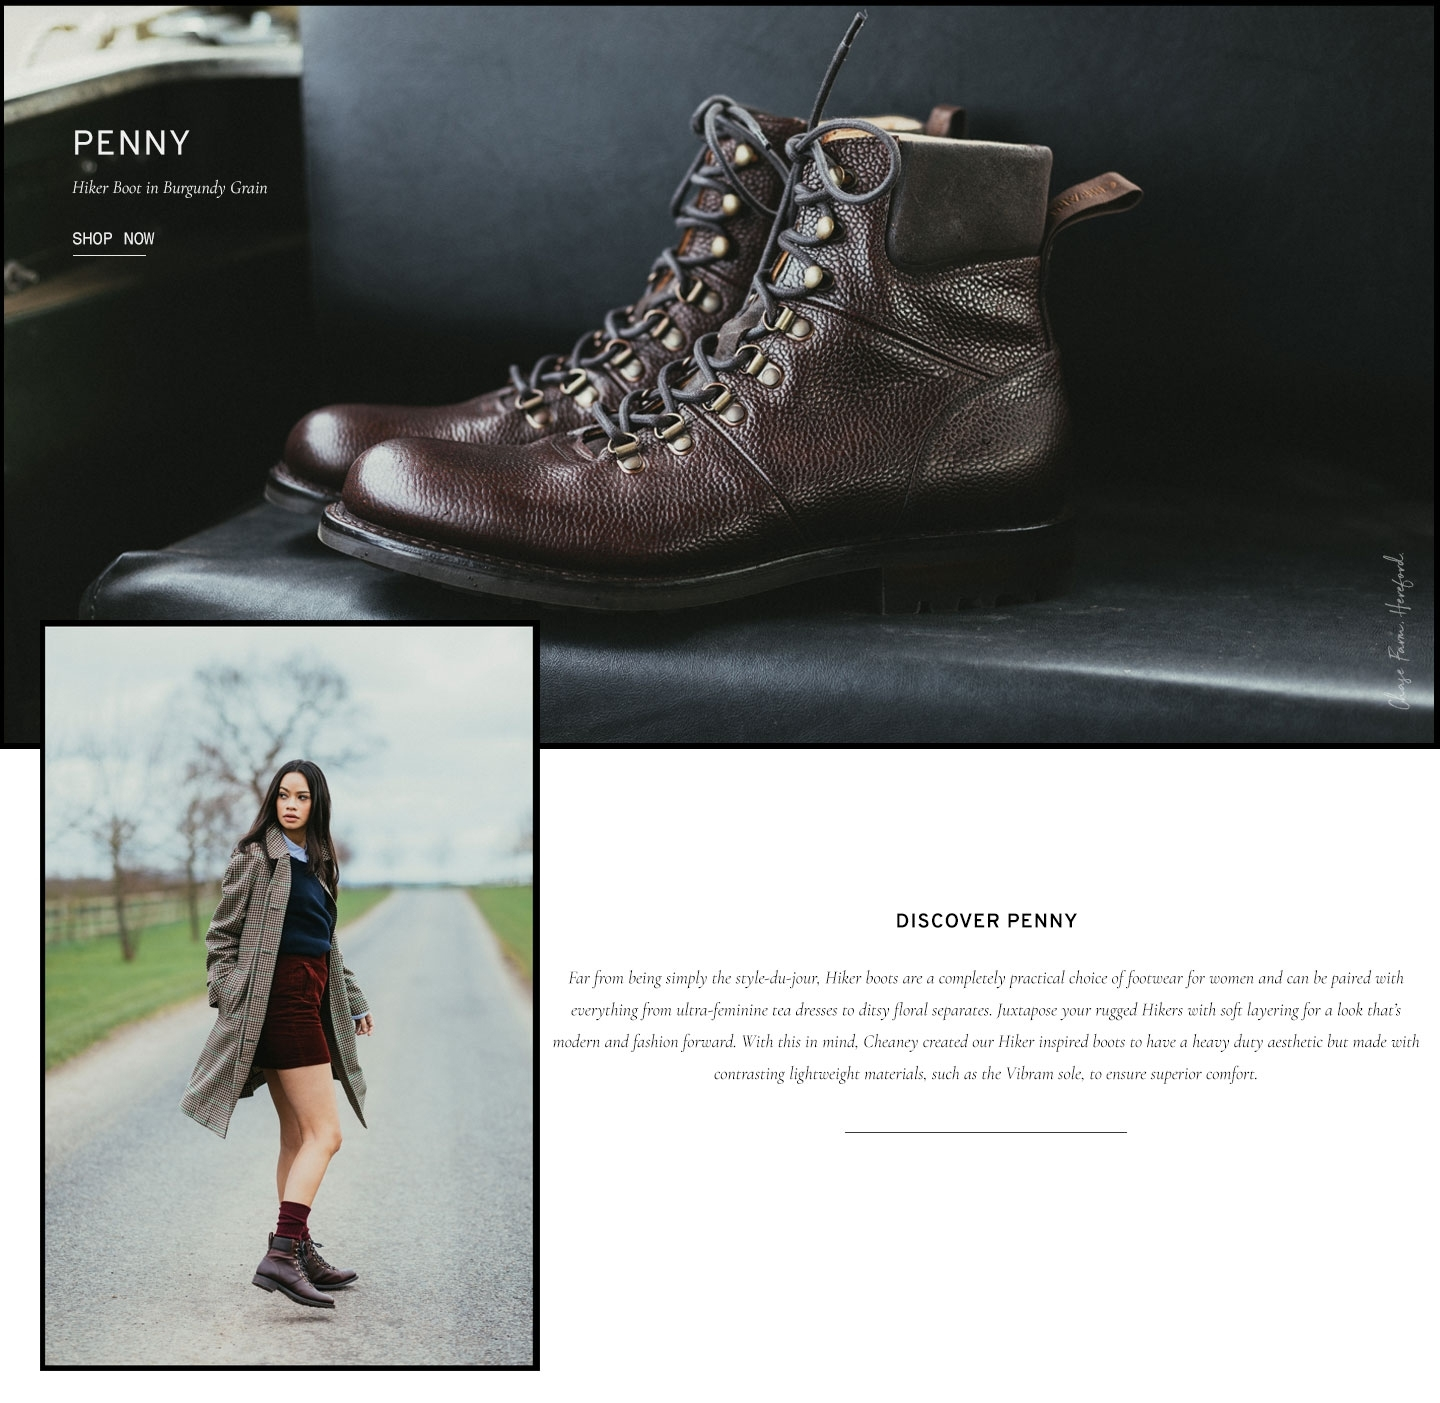 Penny Hiker Boot in Burgundy Grain Leather | Shop Now